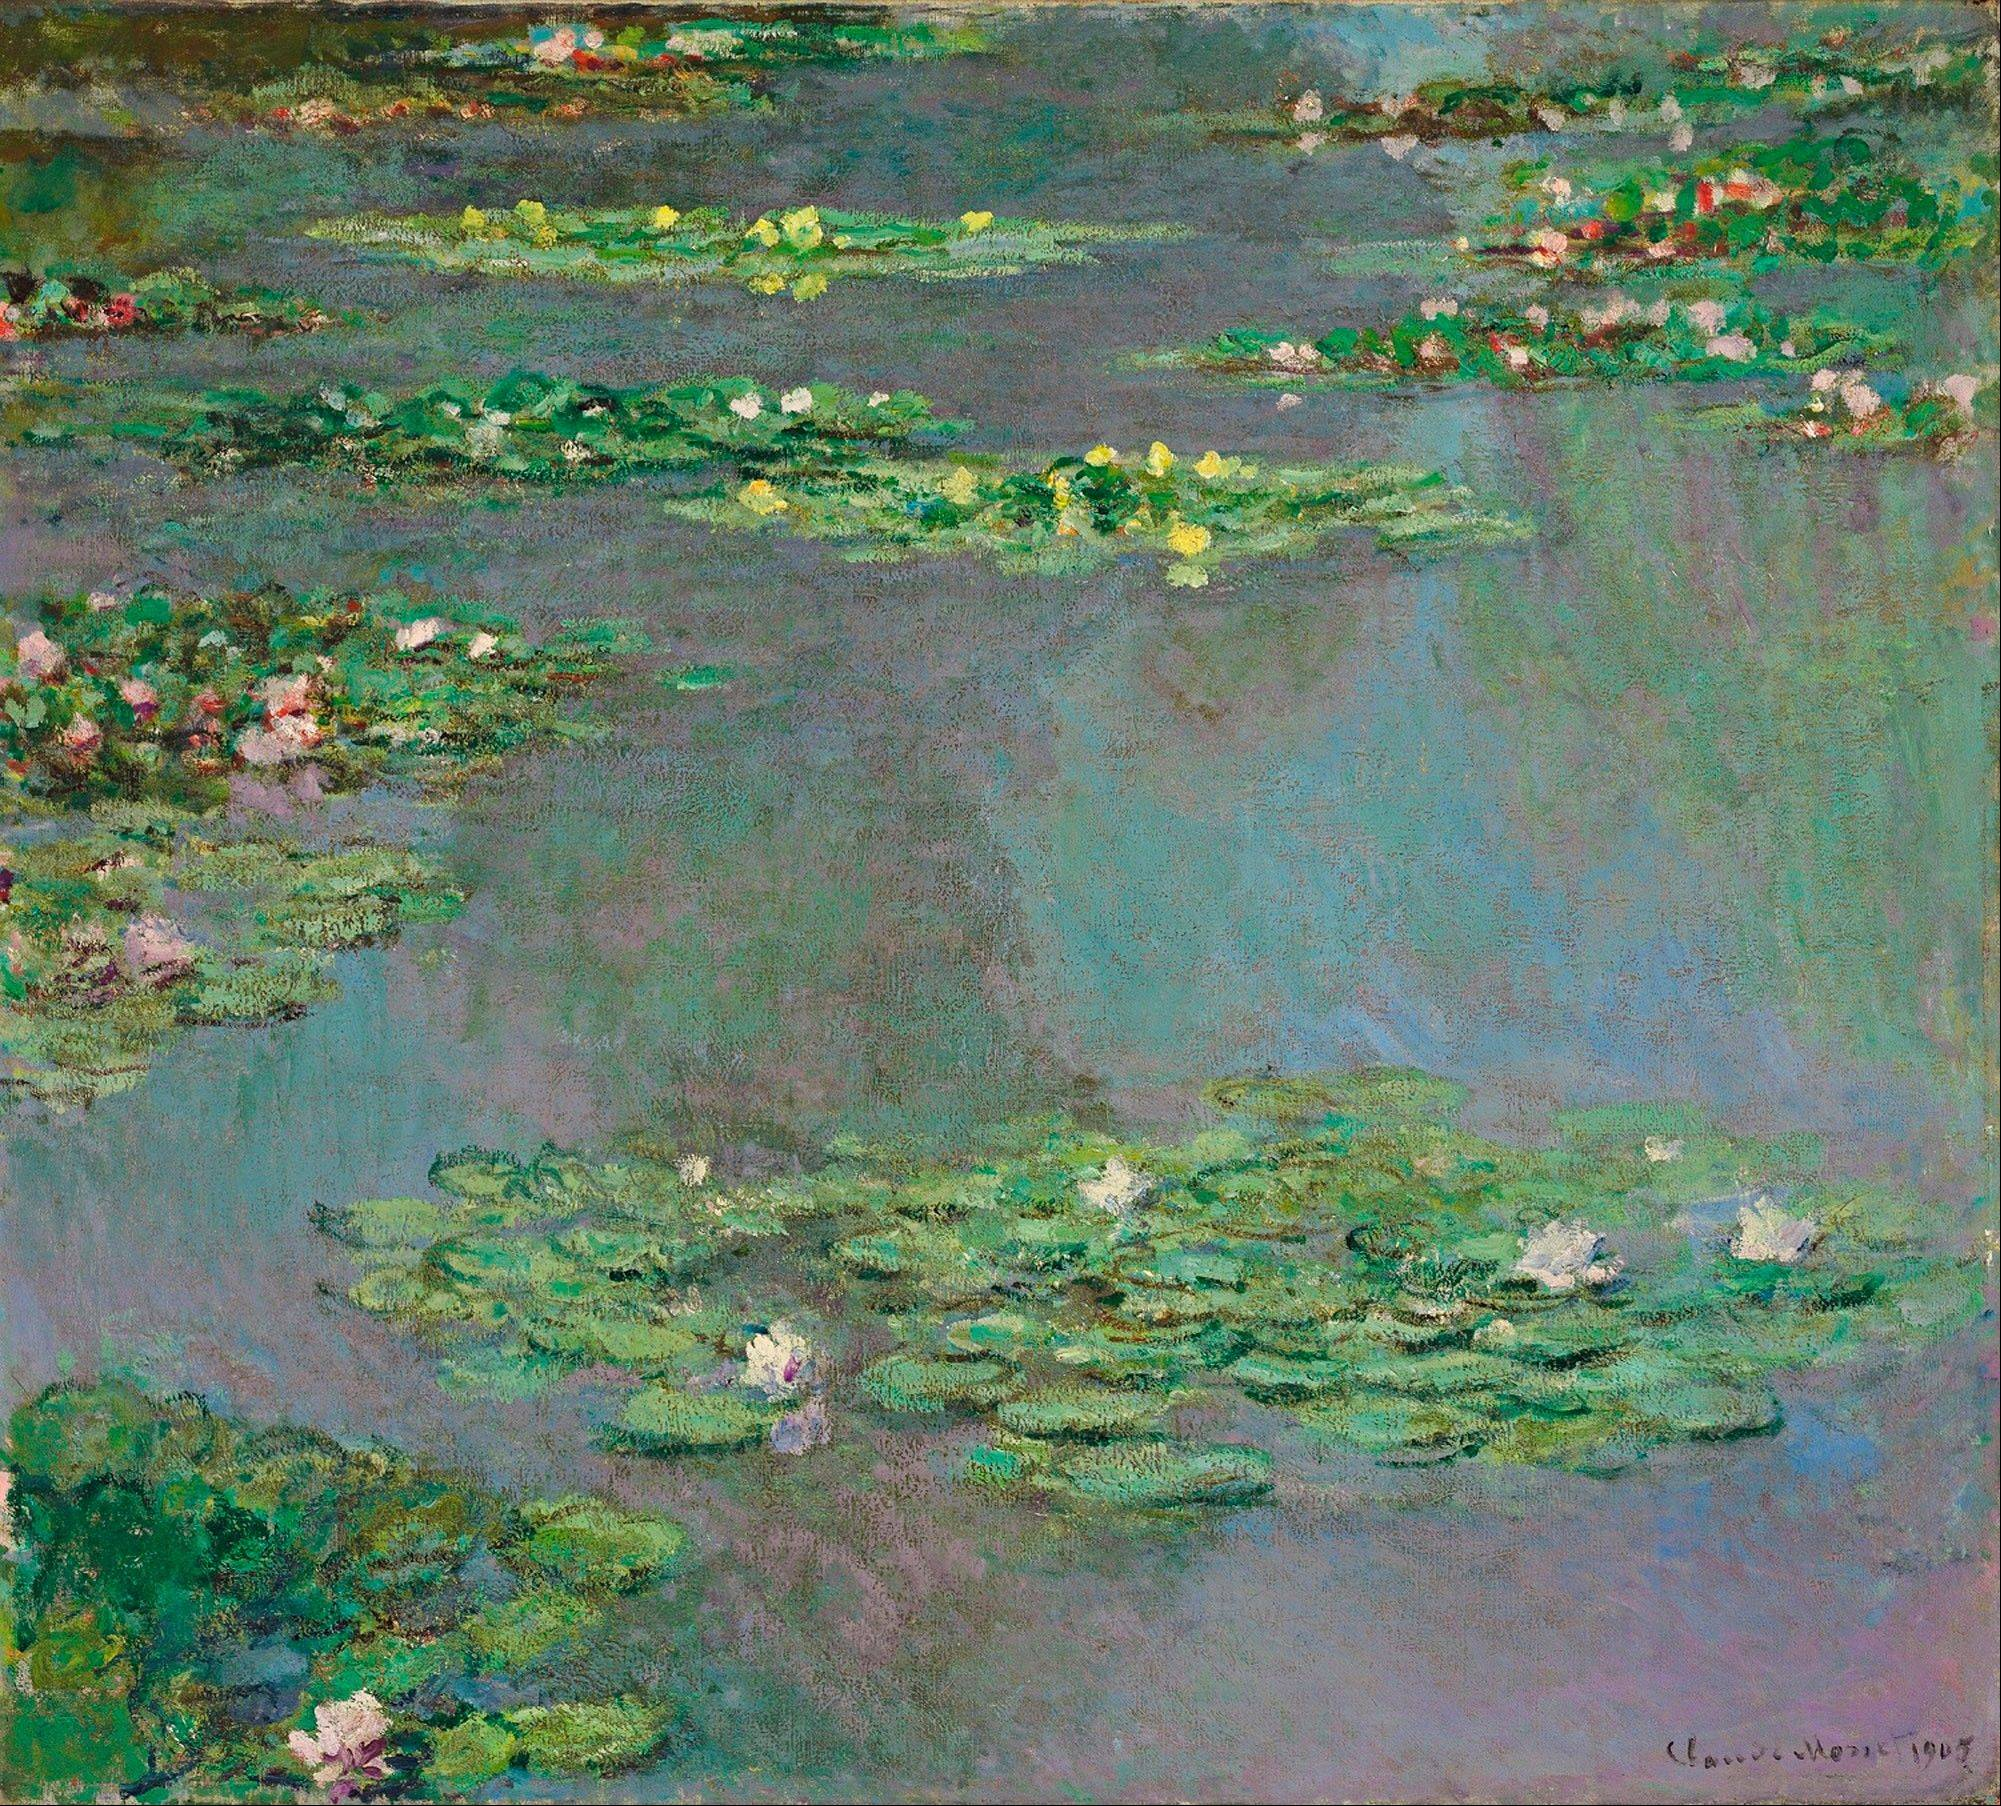 This image provided by Christie�s Images, Ltd, in New York, Friday Nov. 9, 2012, shows a work from Claude Monet�s �Water Lilies� series. The painting is from the estate of Ethel Strong Allen, widow of Wall Street executive Herbert Allen Sr., that she bequeathed to a suburban boarding school, was sold Wednesday for more than $43-million at Christie�s Evening Sale of Impressionist & Modern Art.